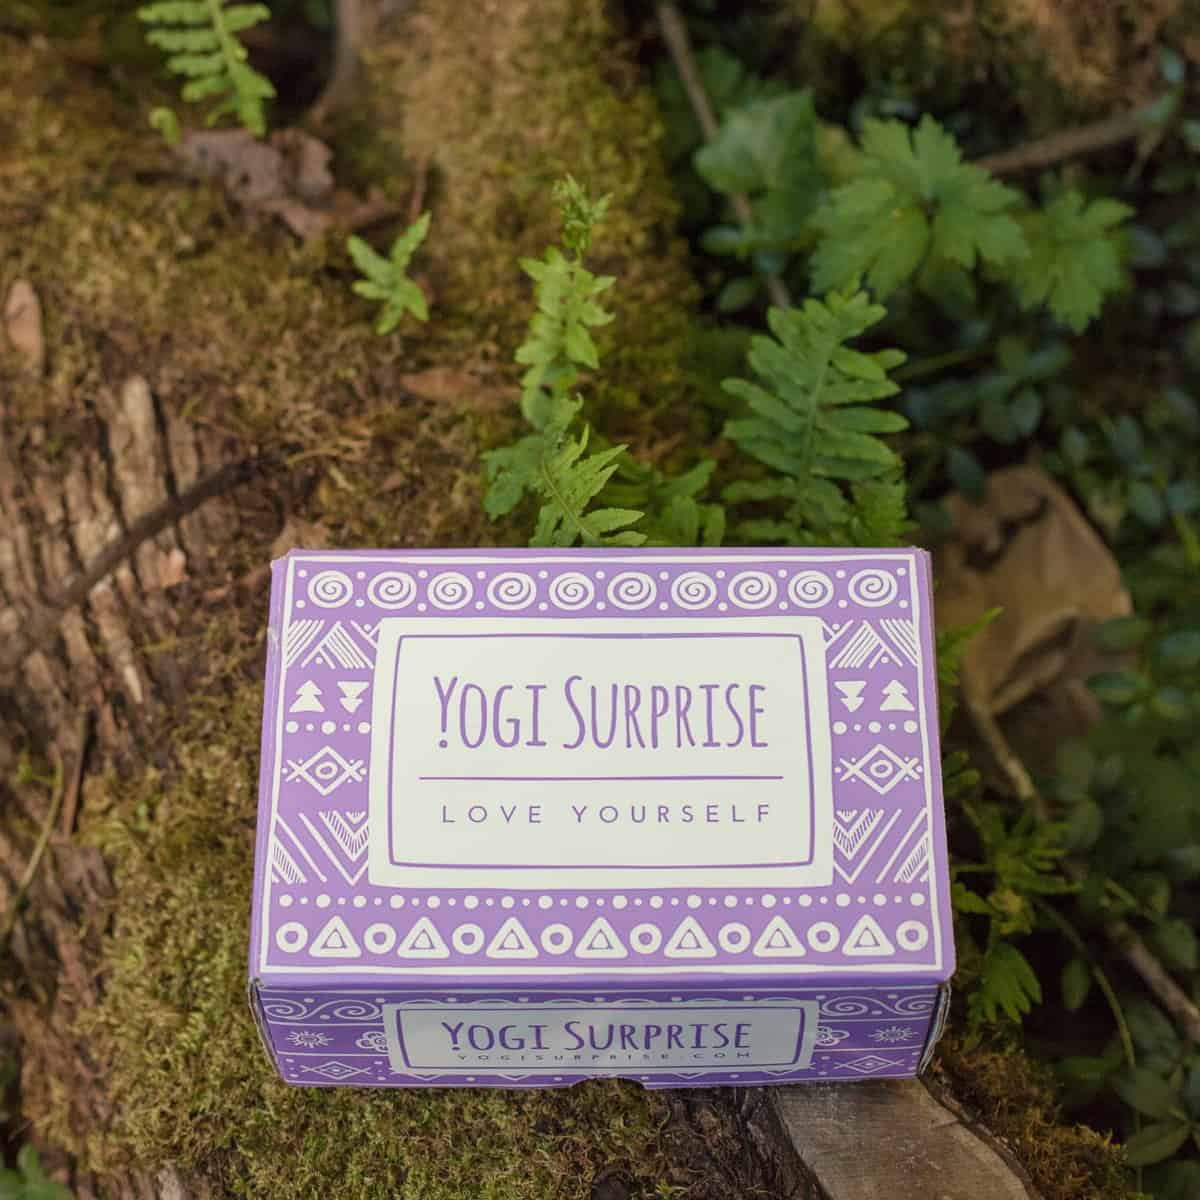 Yogi Surprise Subscription Box